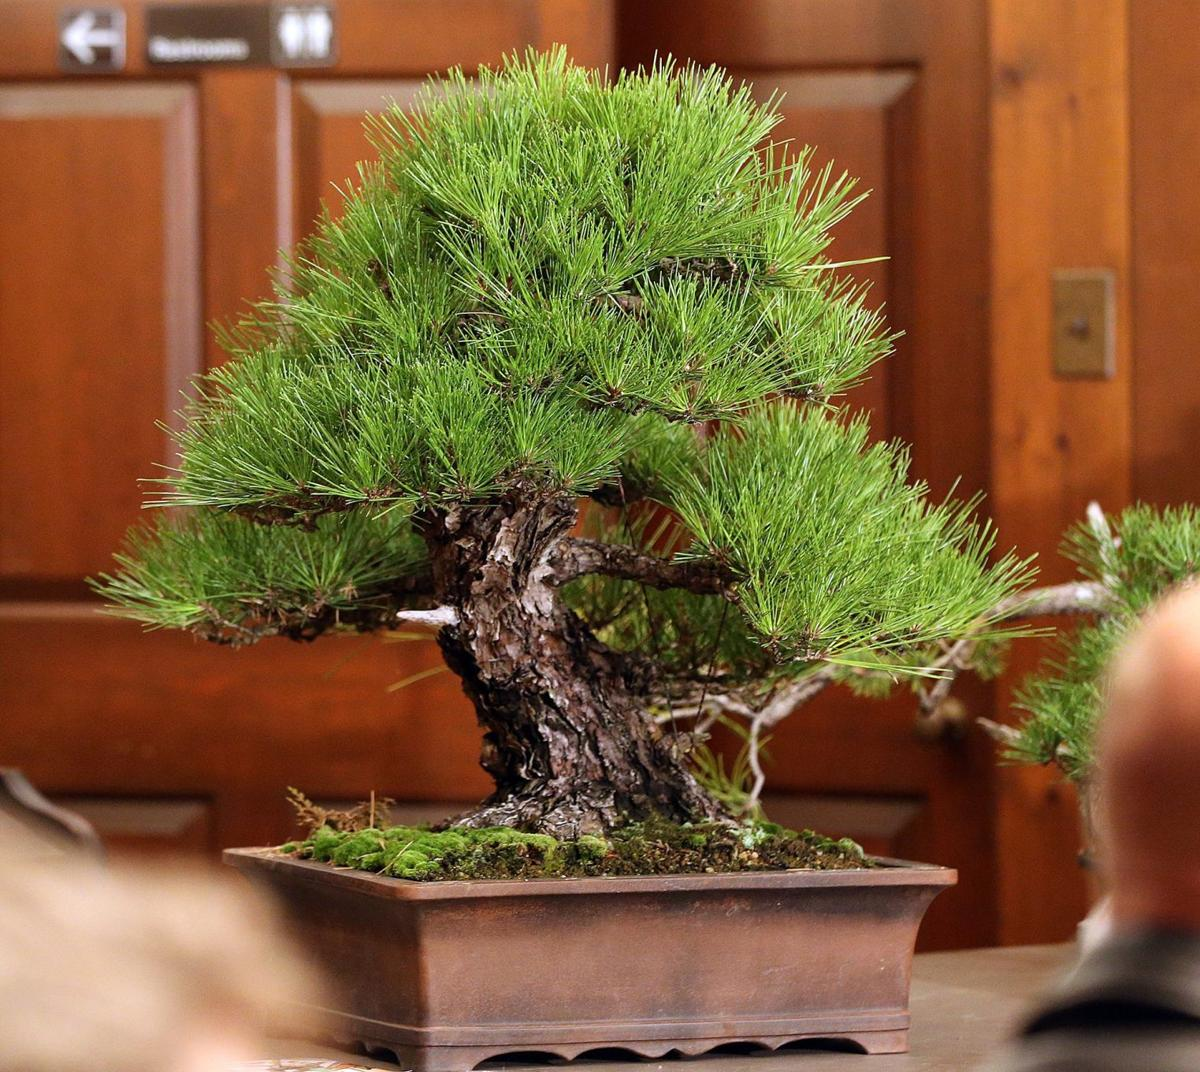 Slow Gardening Bonsai Are Tiny And Ancient But Don T Call Them Houseplants Home Garden Lancasteronline Com